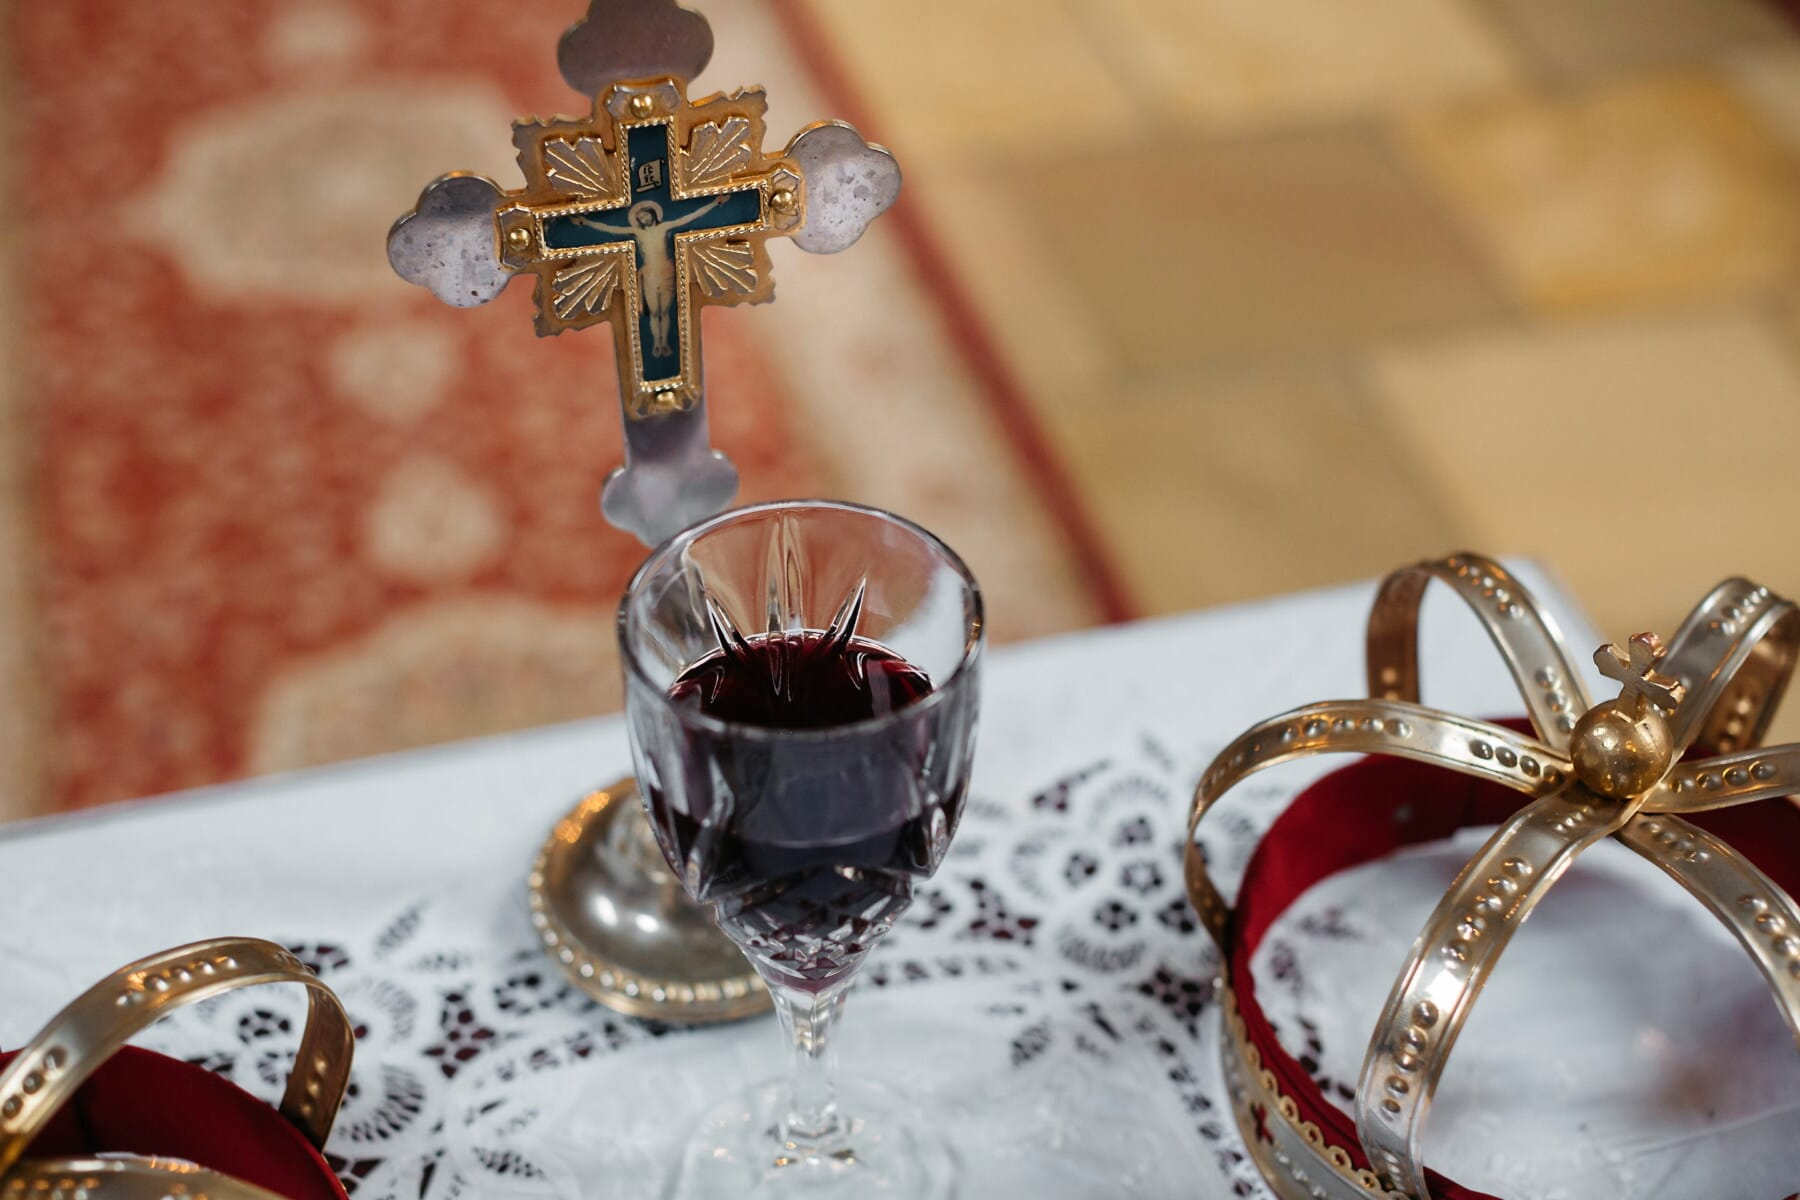 red wine, relict, coronation, ceremony, cross, crown, religion, baptism, alcohol, beverage